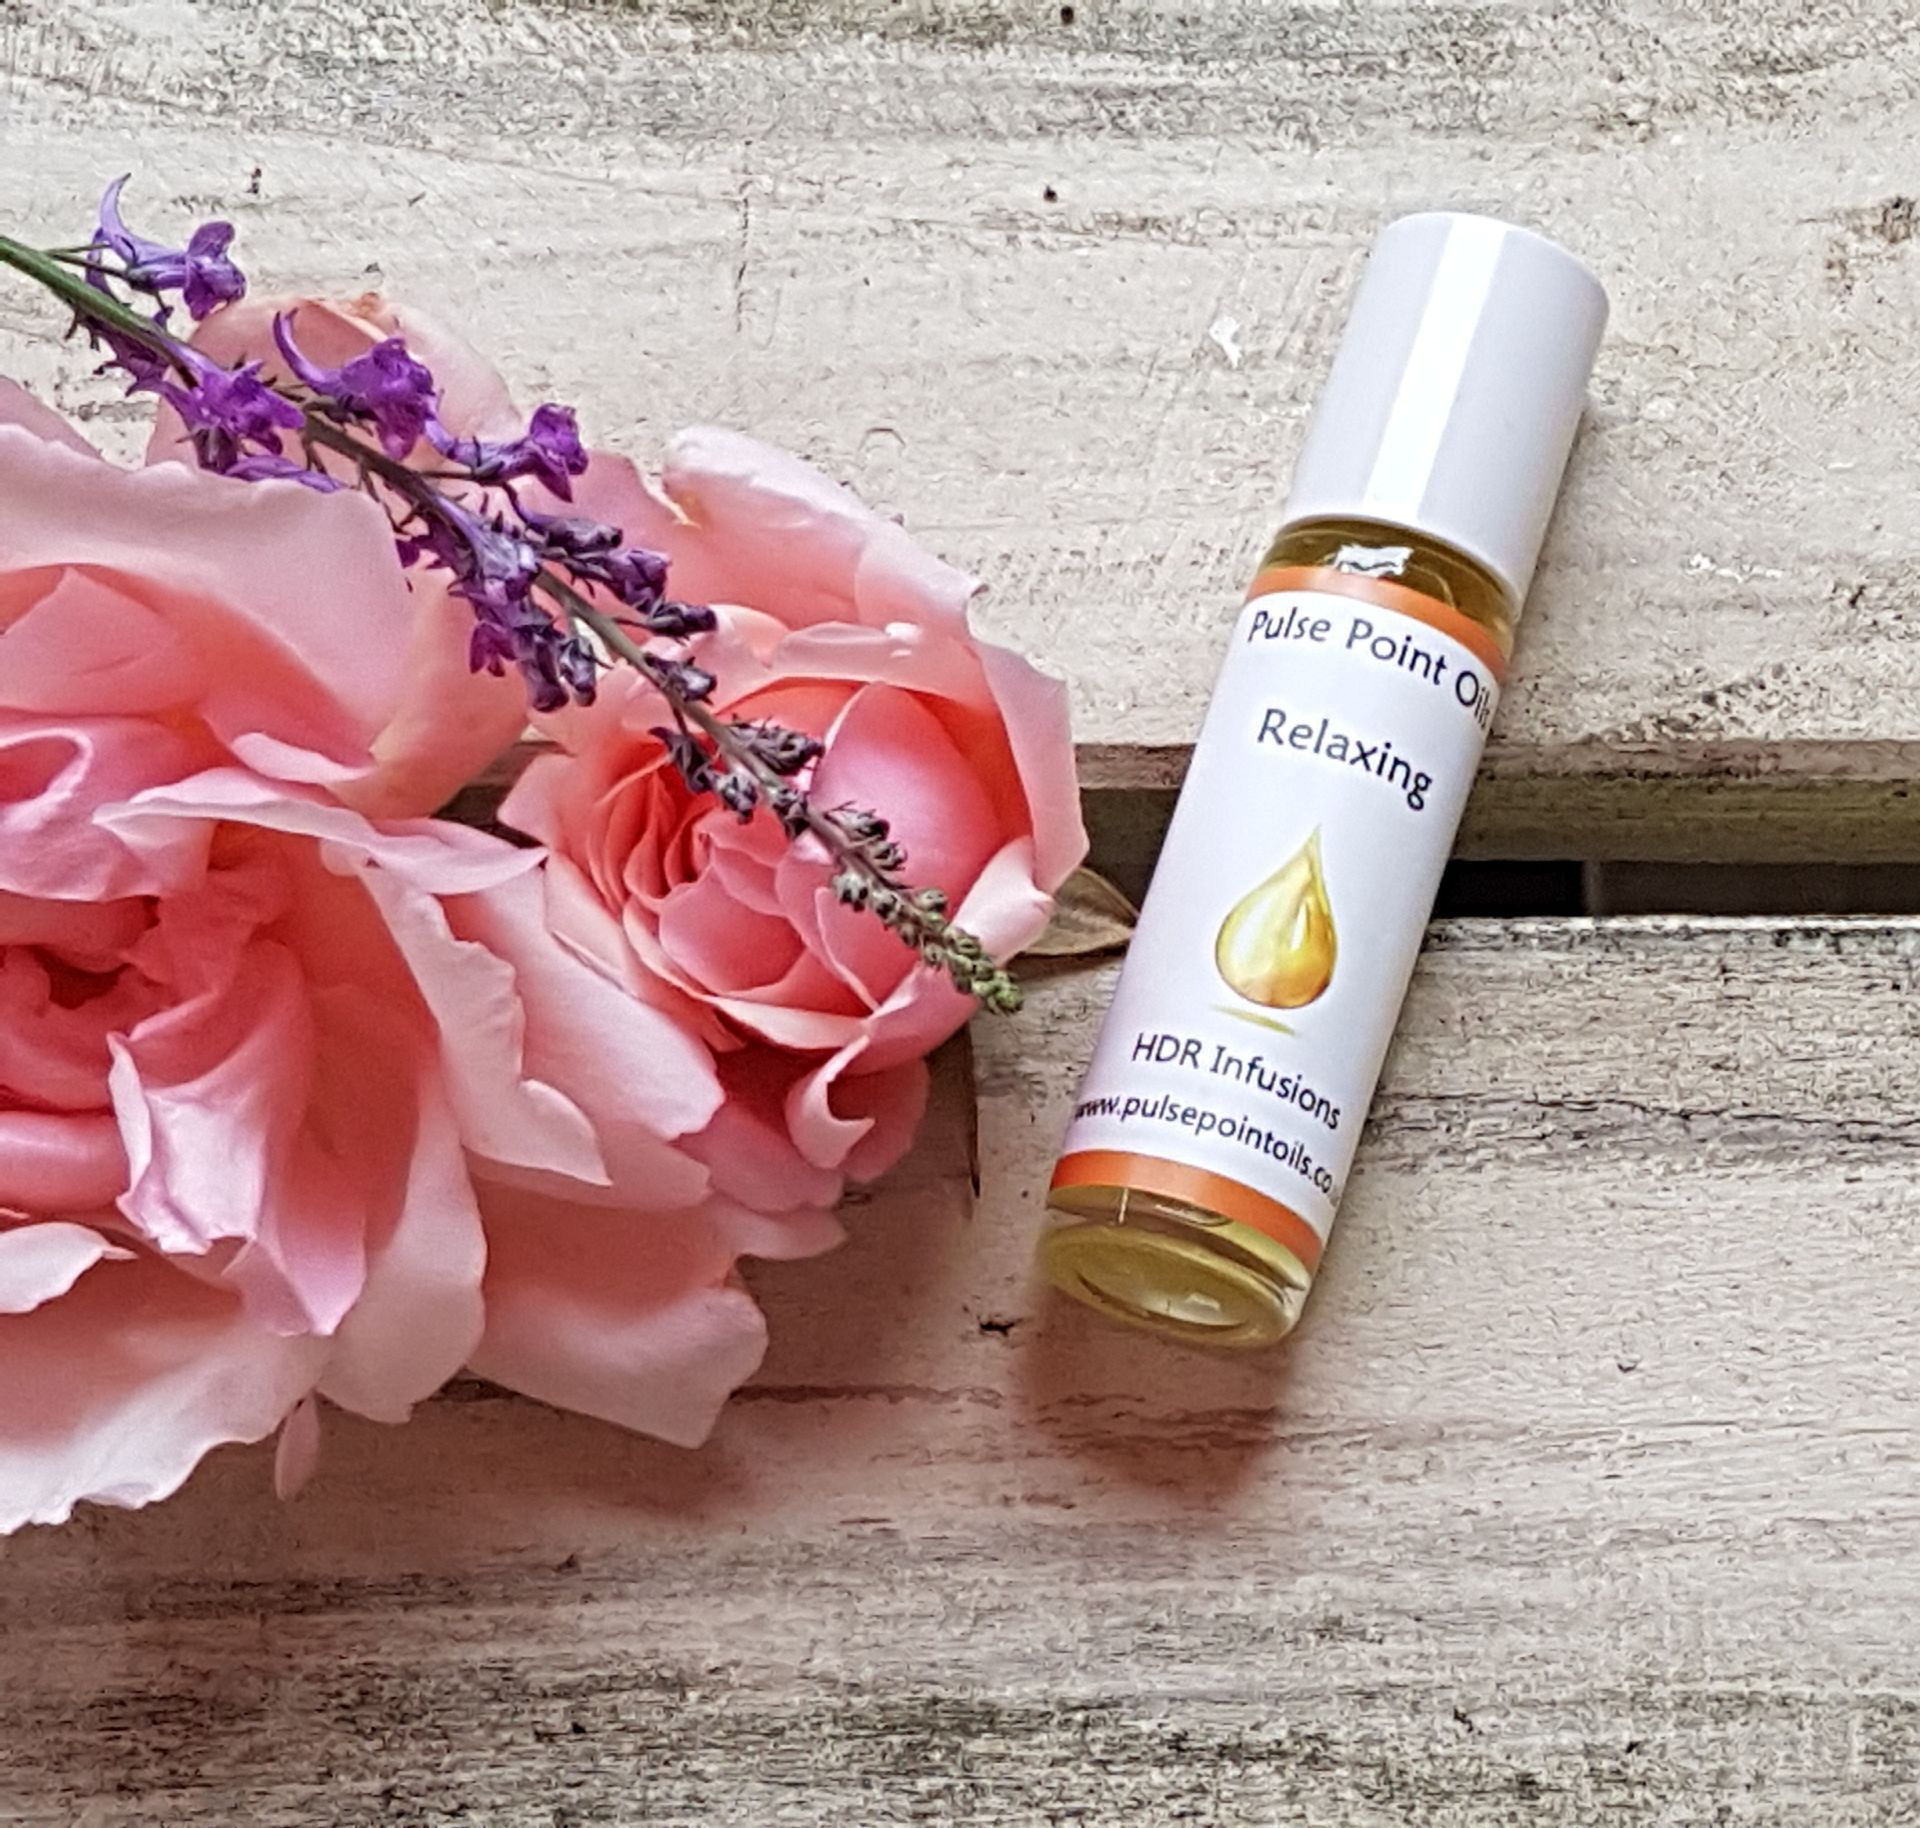 Relaxing Pulse Point Oil from Pulse Point Oils, this